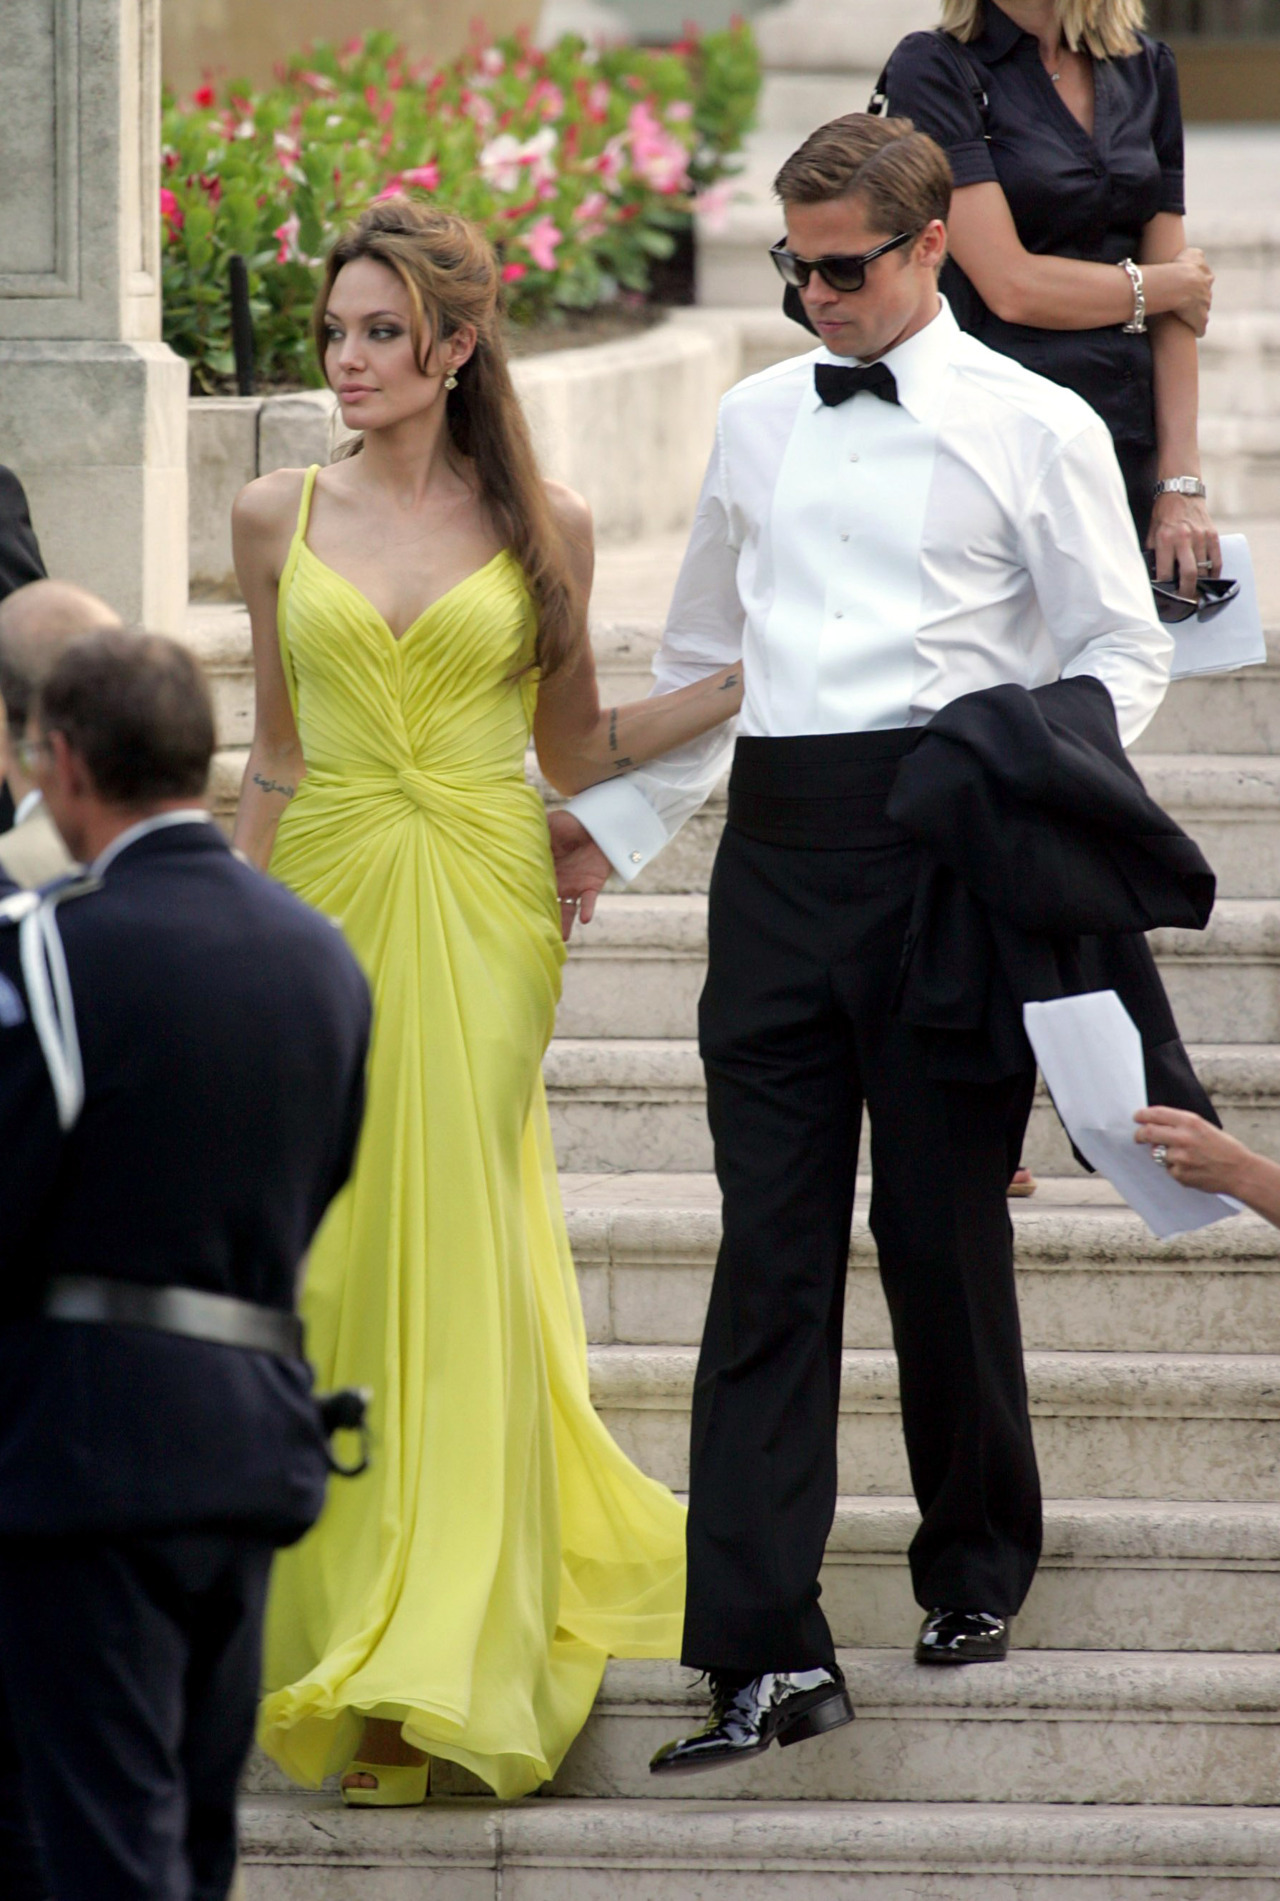 Angelina Jolie and Brad Pitt at the 2007 Cannes Film Festival